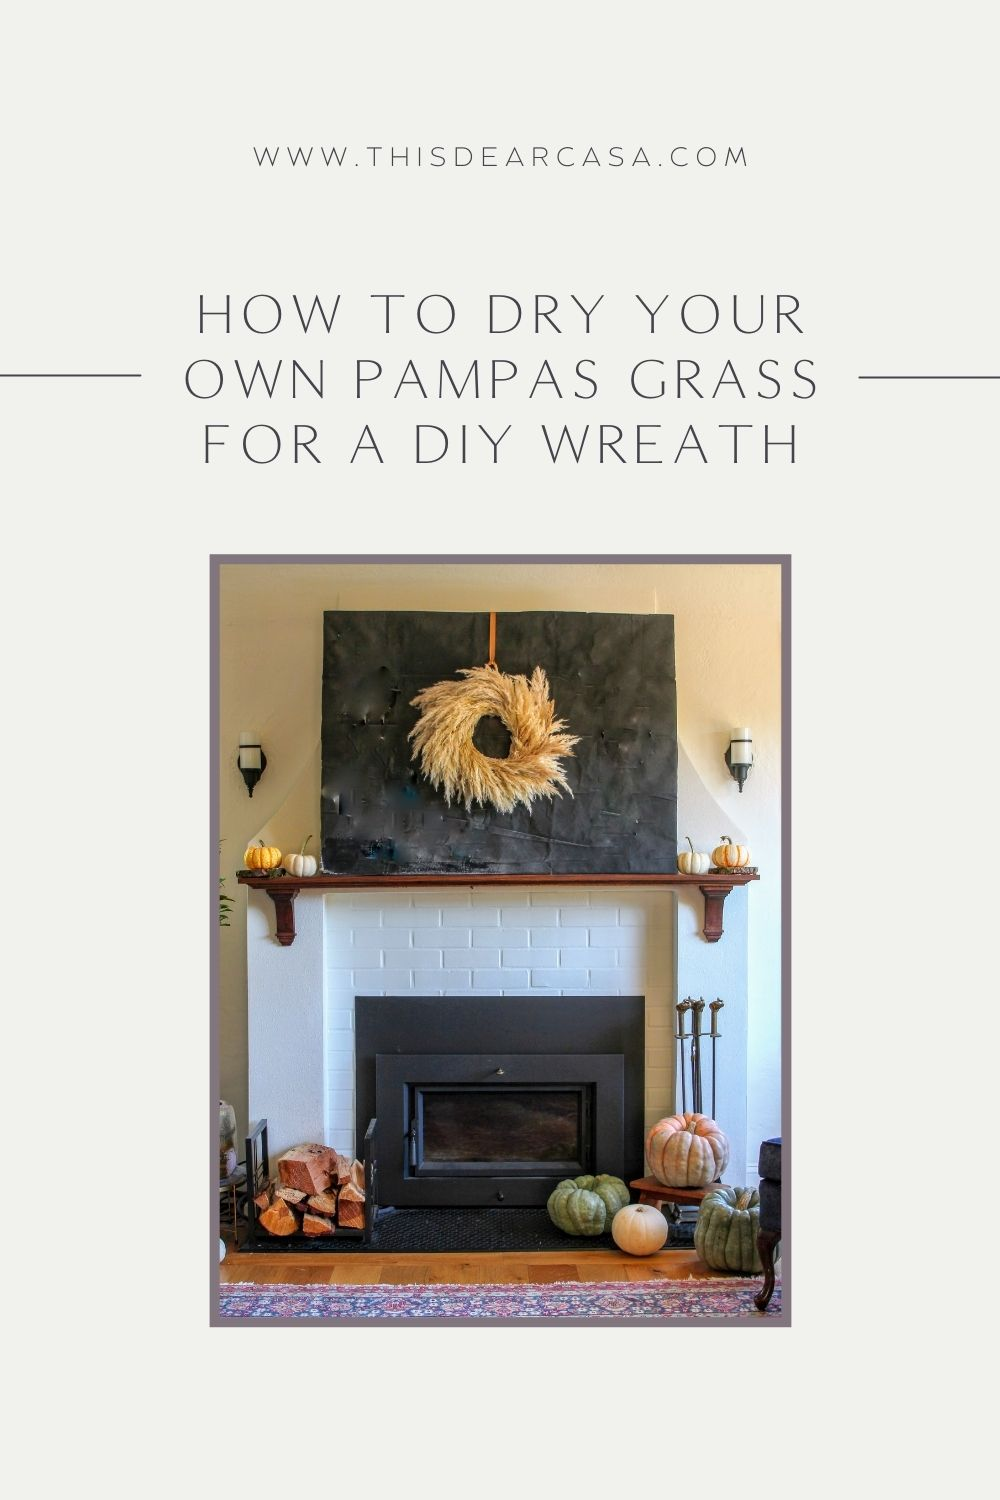 How To Dry Your Own Pampas Grass For A DIY Wreath